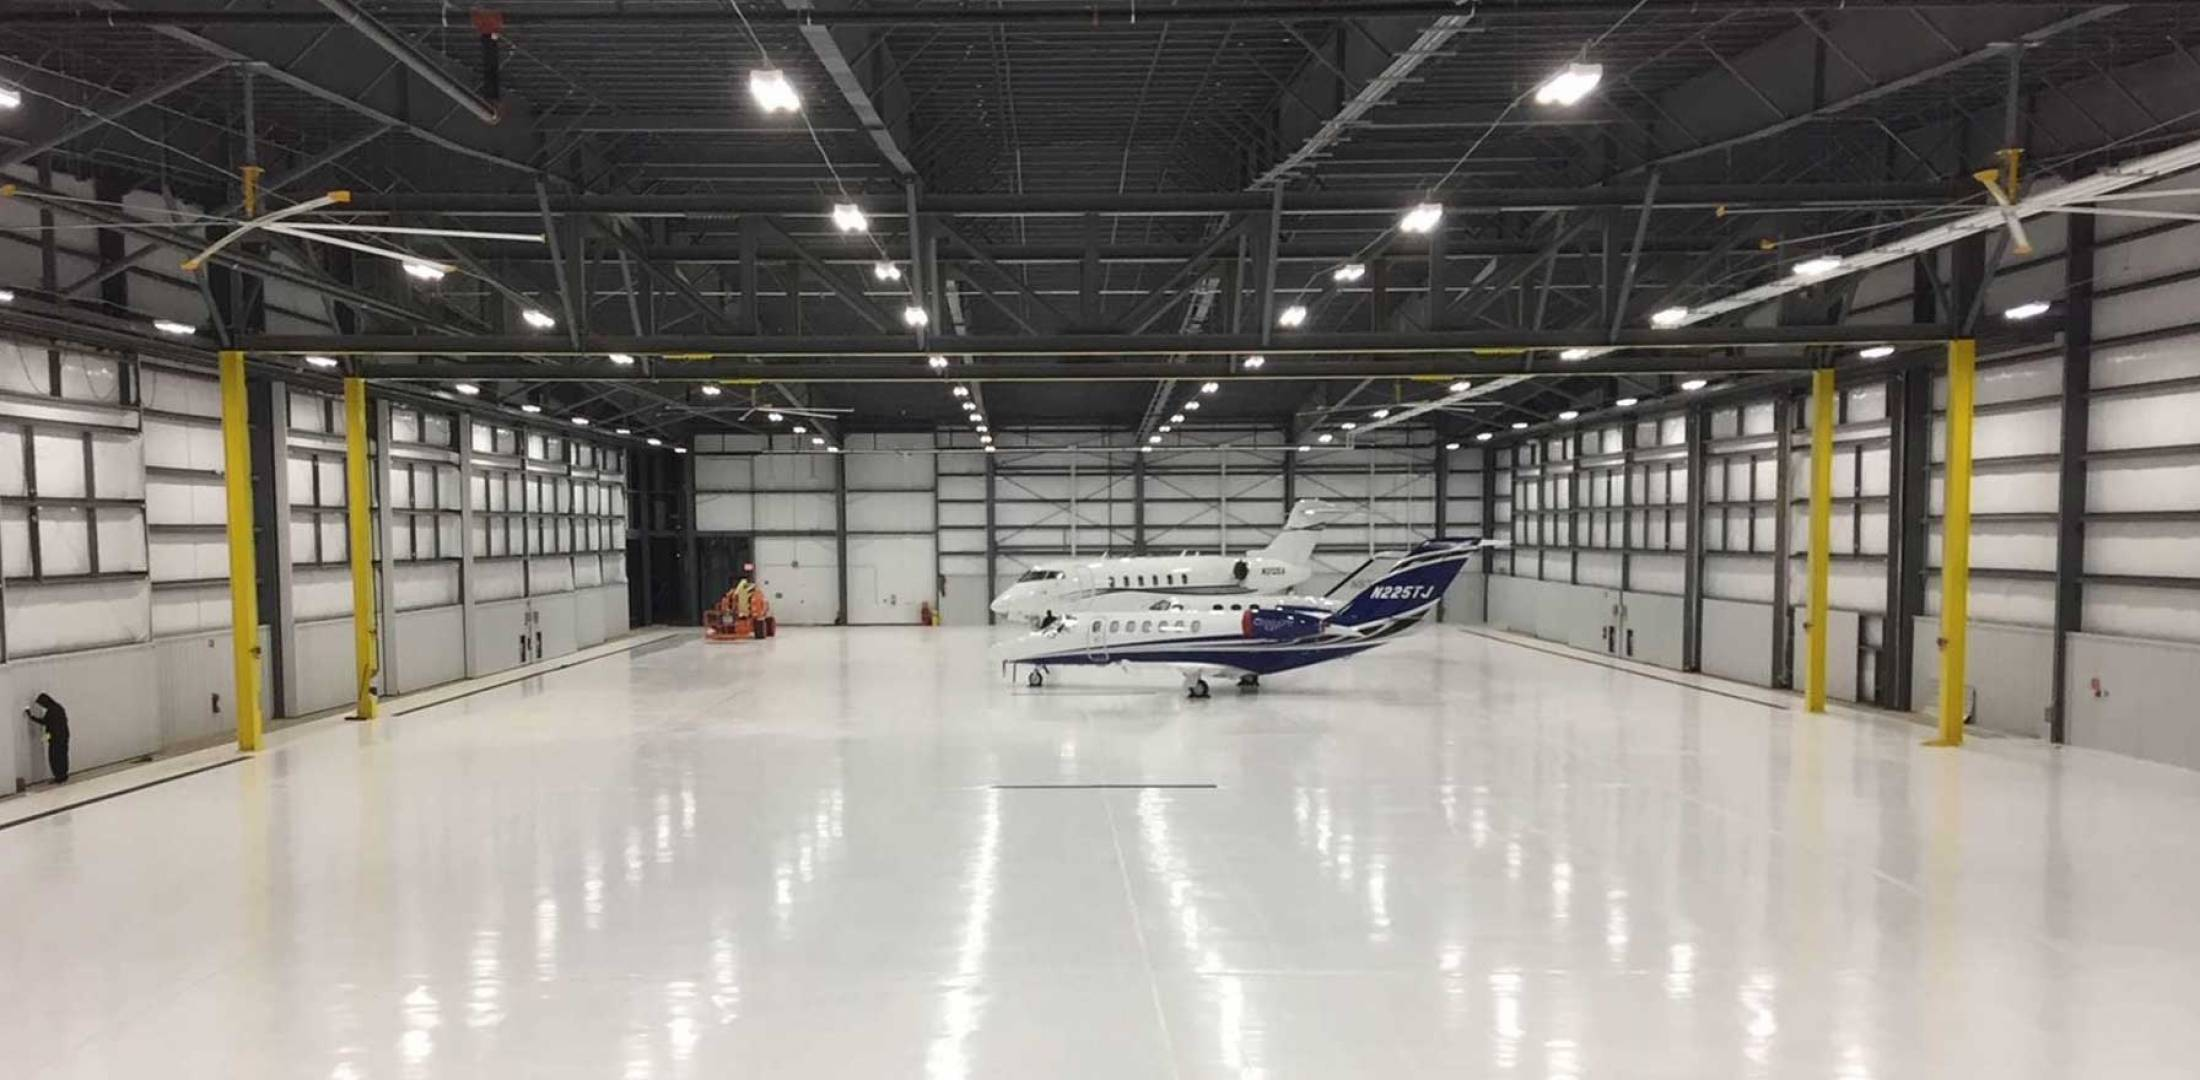 new hangar up and running at million air hpn business aviation news aviation international news. Black Bedroom Furniture Sets. Home Design Ideas